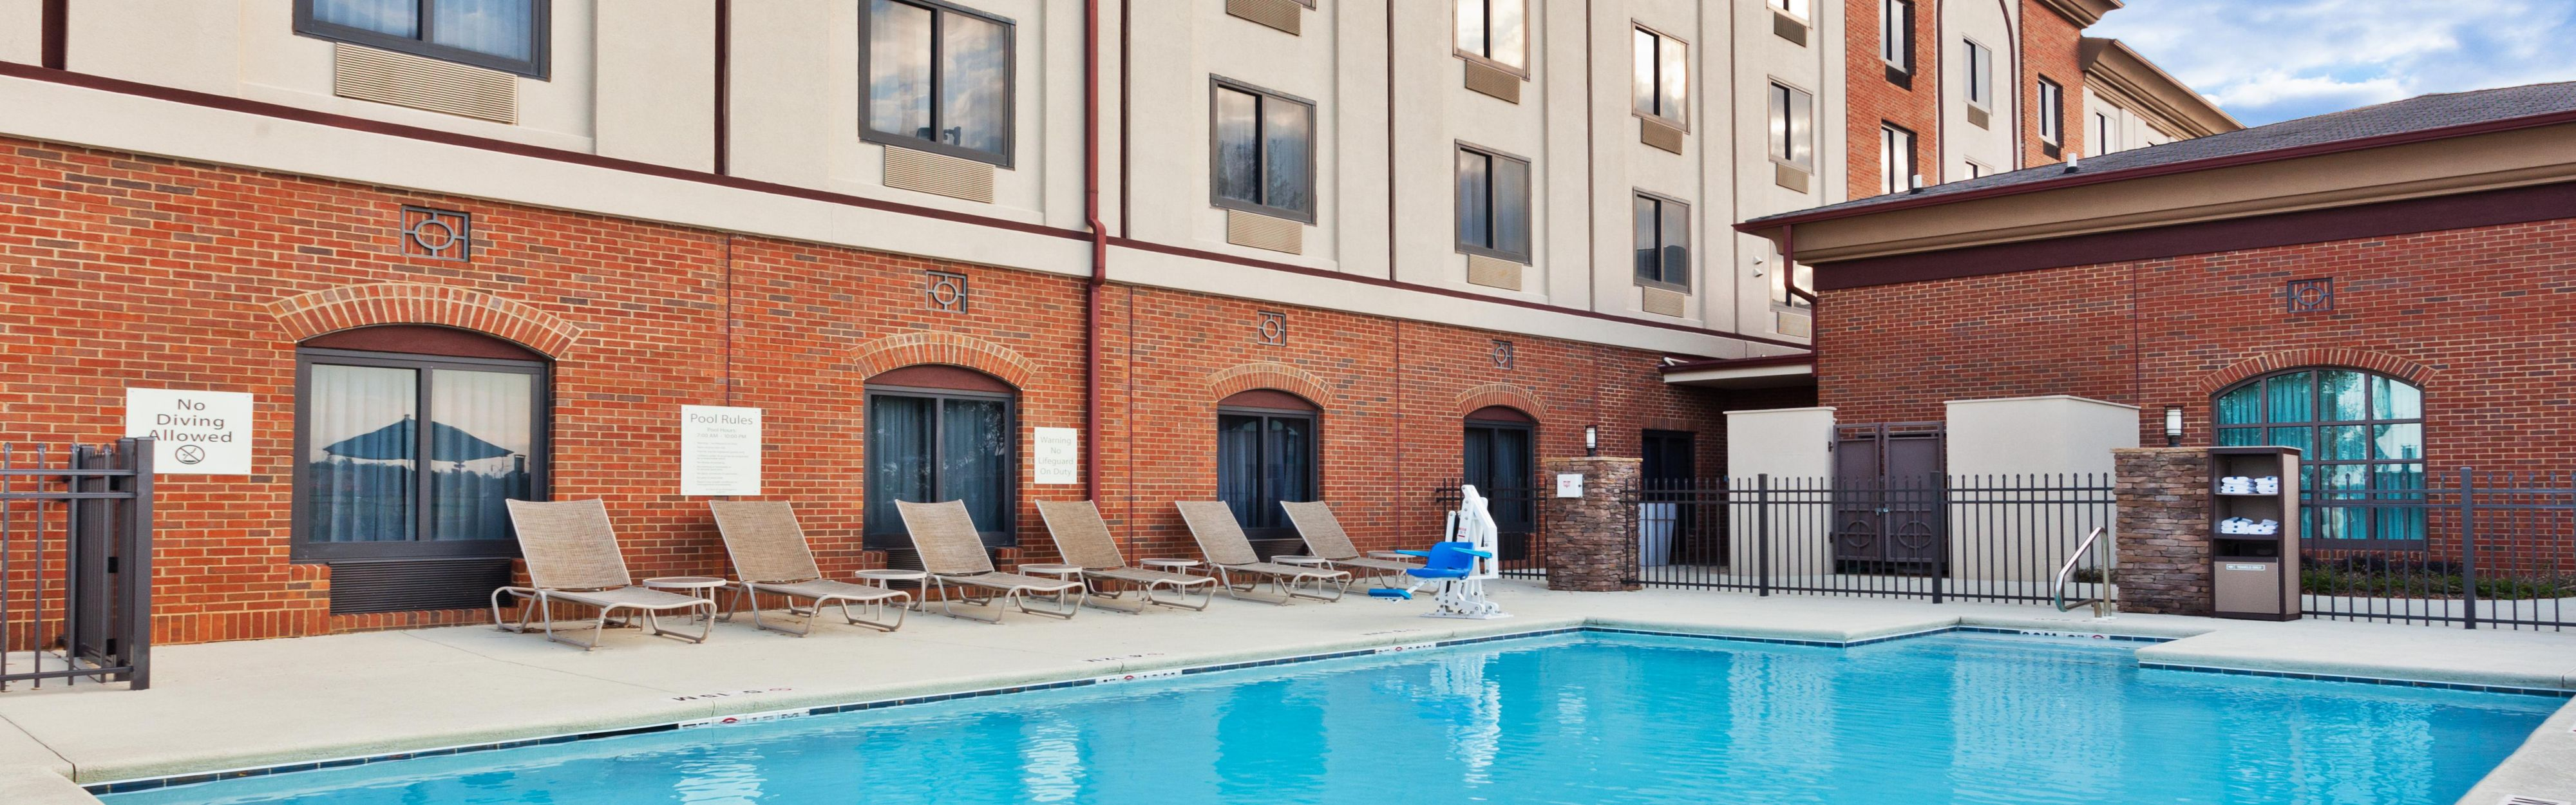 Hotels And Motels In Montgomery Alabama